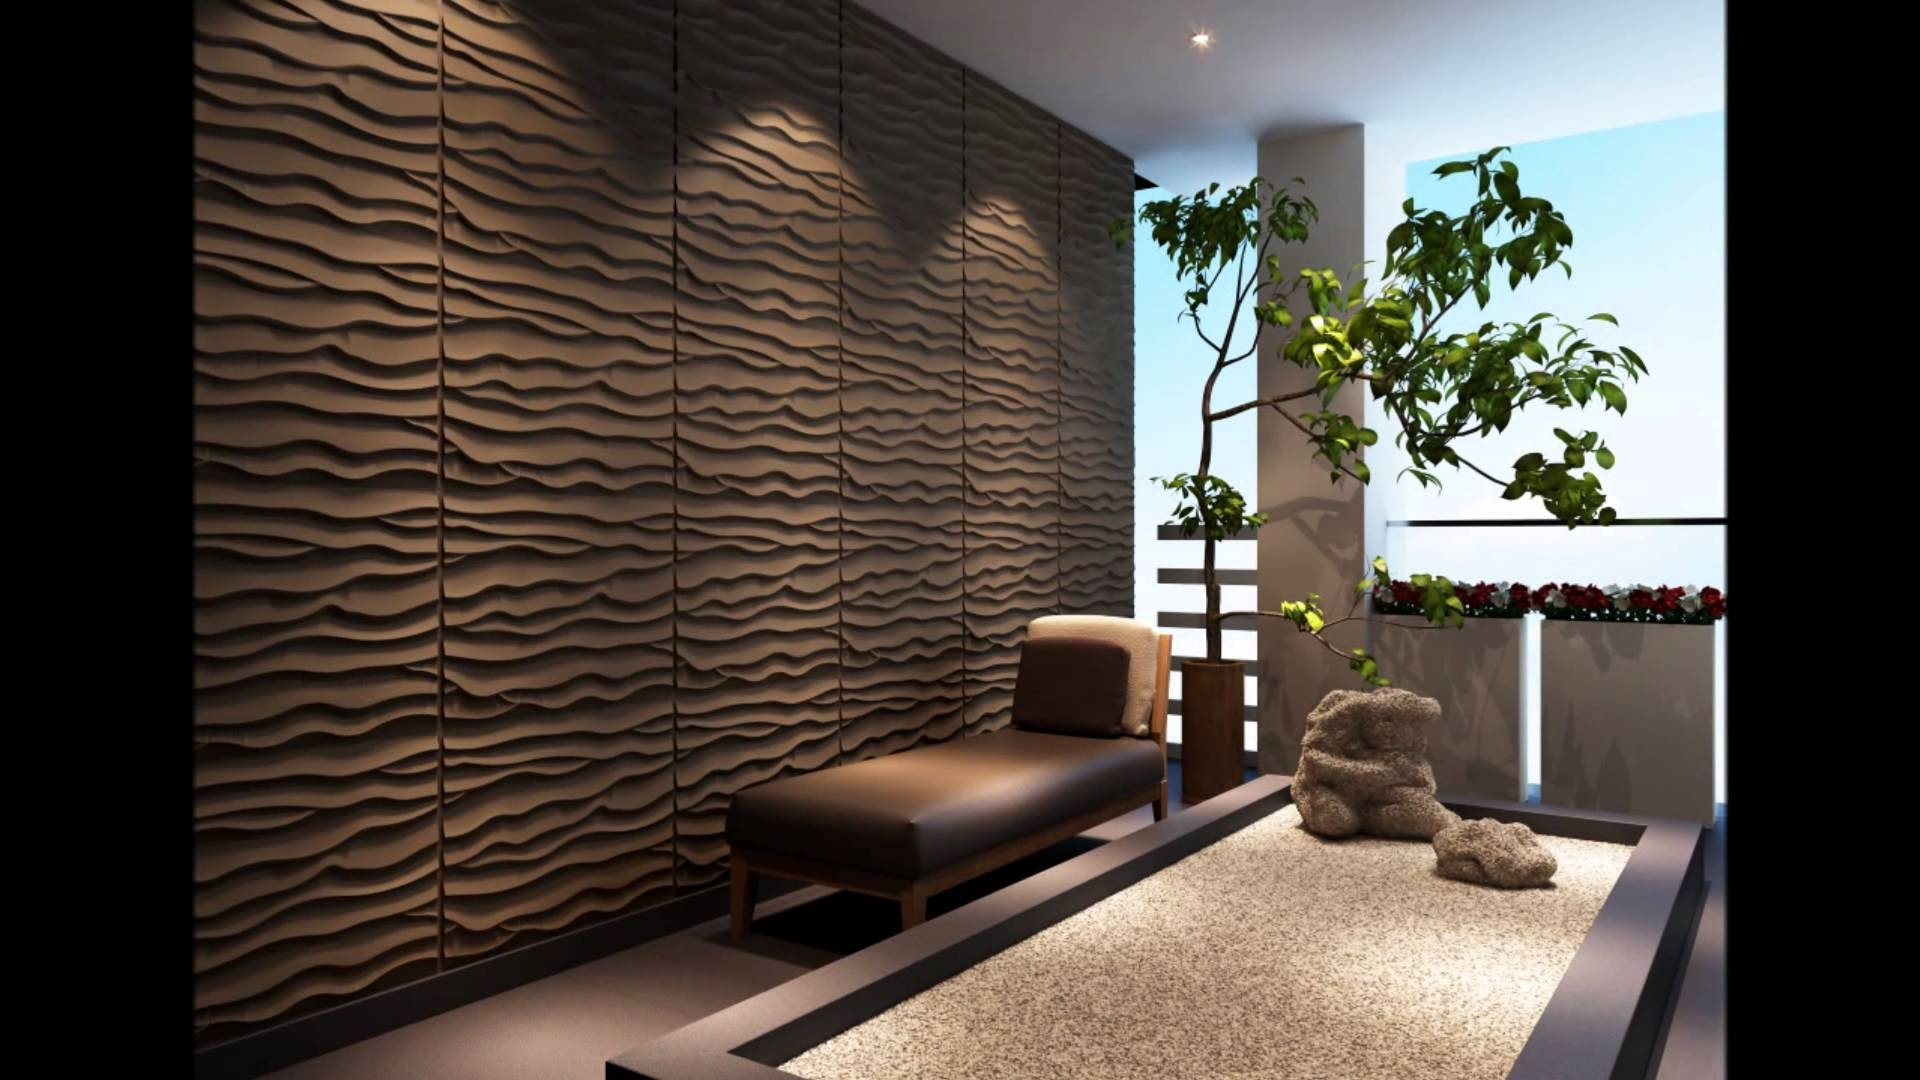 Triwol 3d Interior Decorative Wall Panels – Wall Art 3d Wall Panel Pertaining To Most Recently Released Wall Art Panels (View 9 of 20)